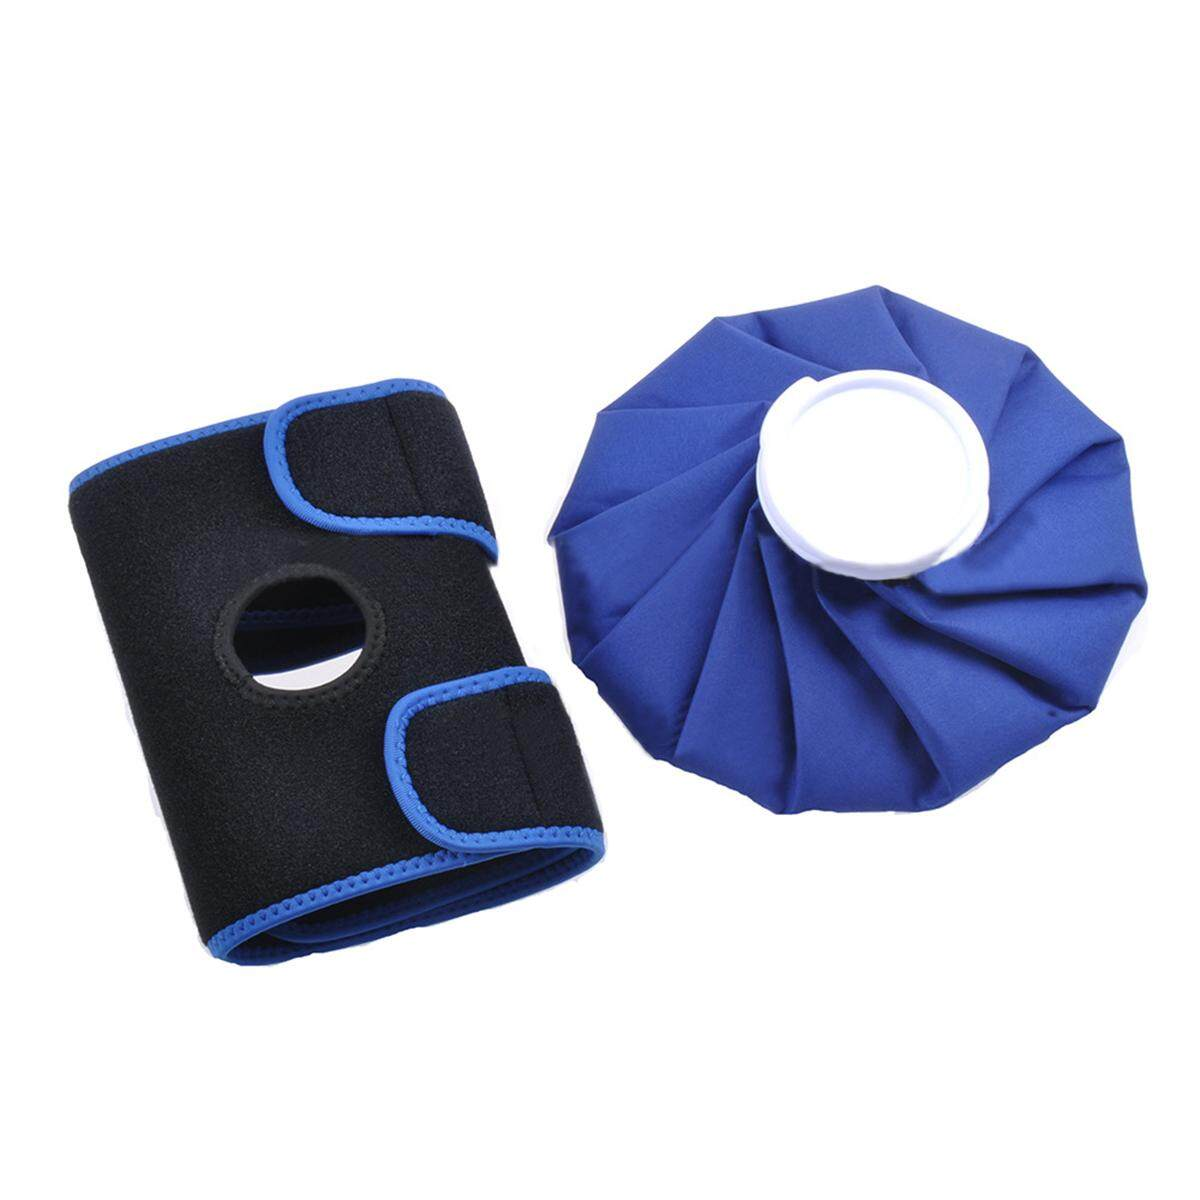 Pain Relief Hot Cold Therapy Reusable Ice Bag Pack & Wrap For Knee Shoulder Back #9inch